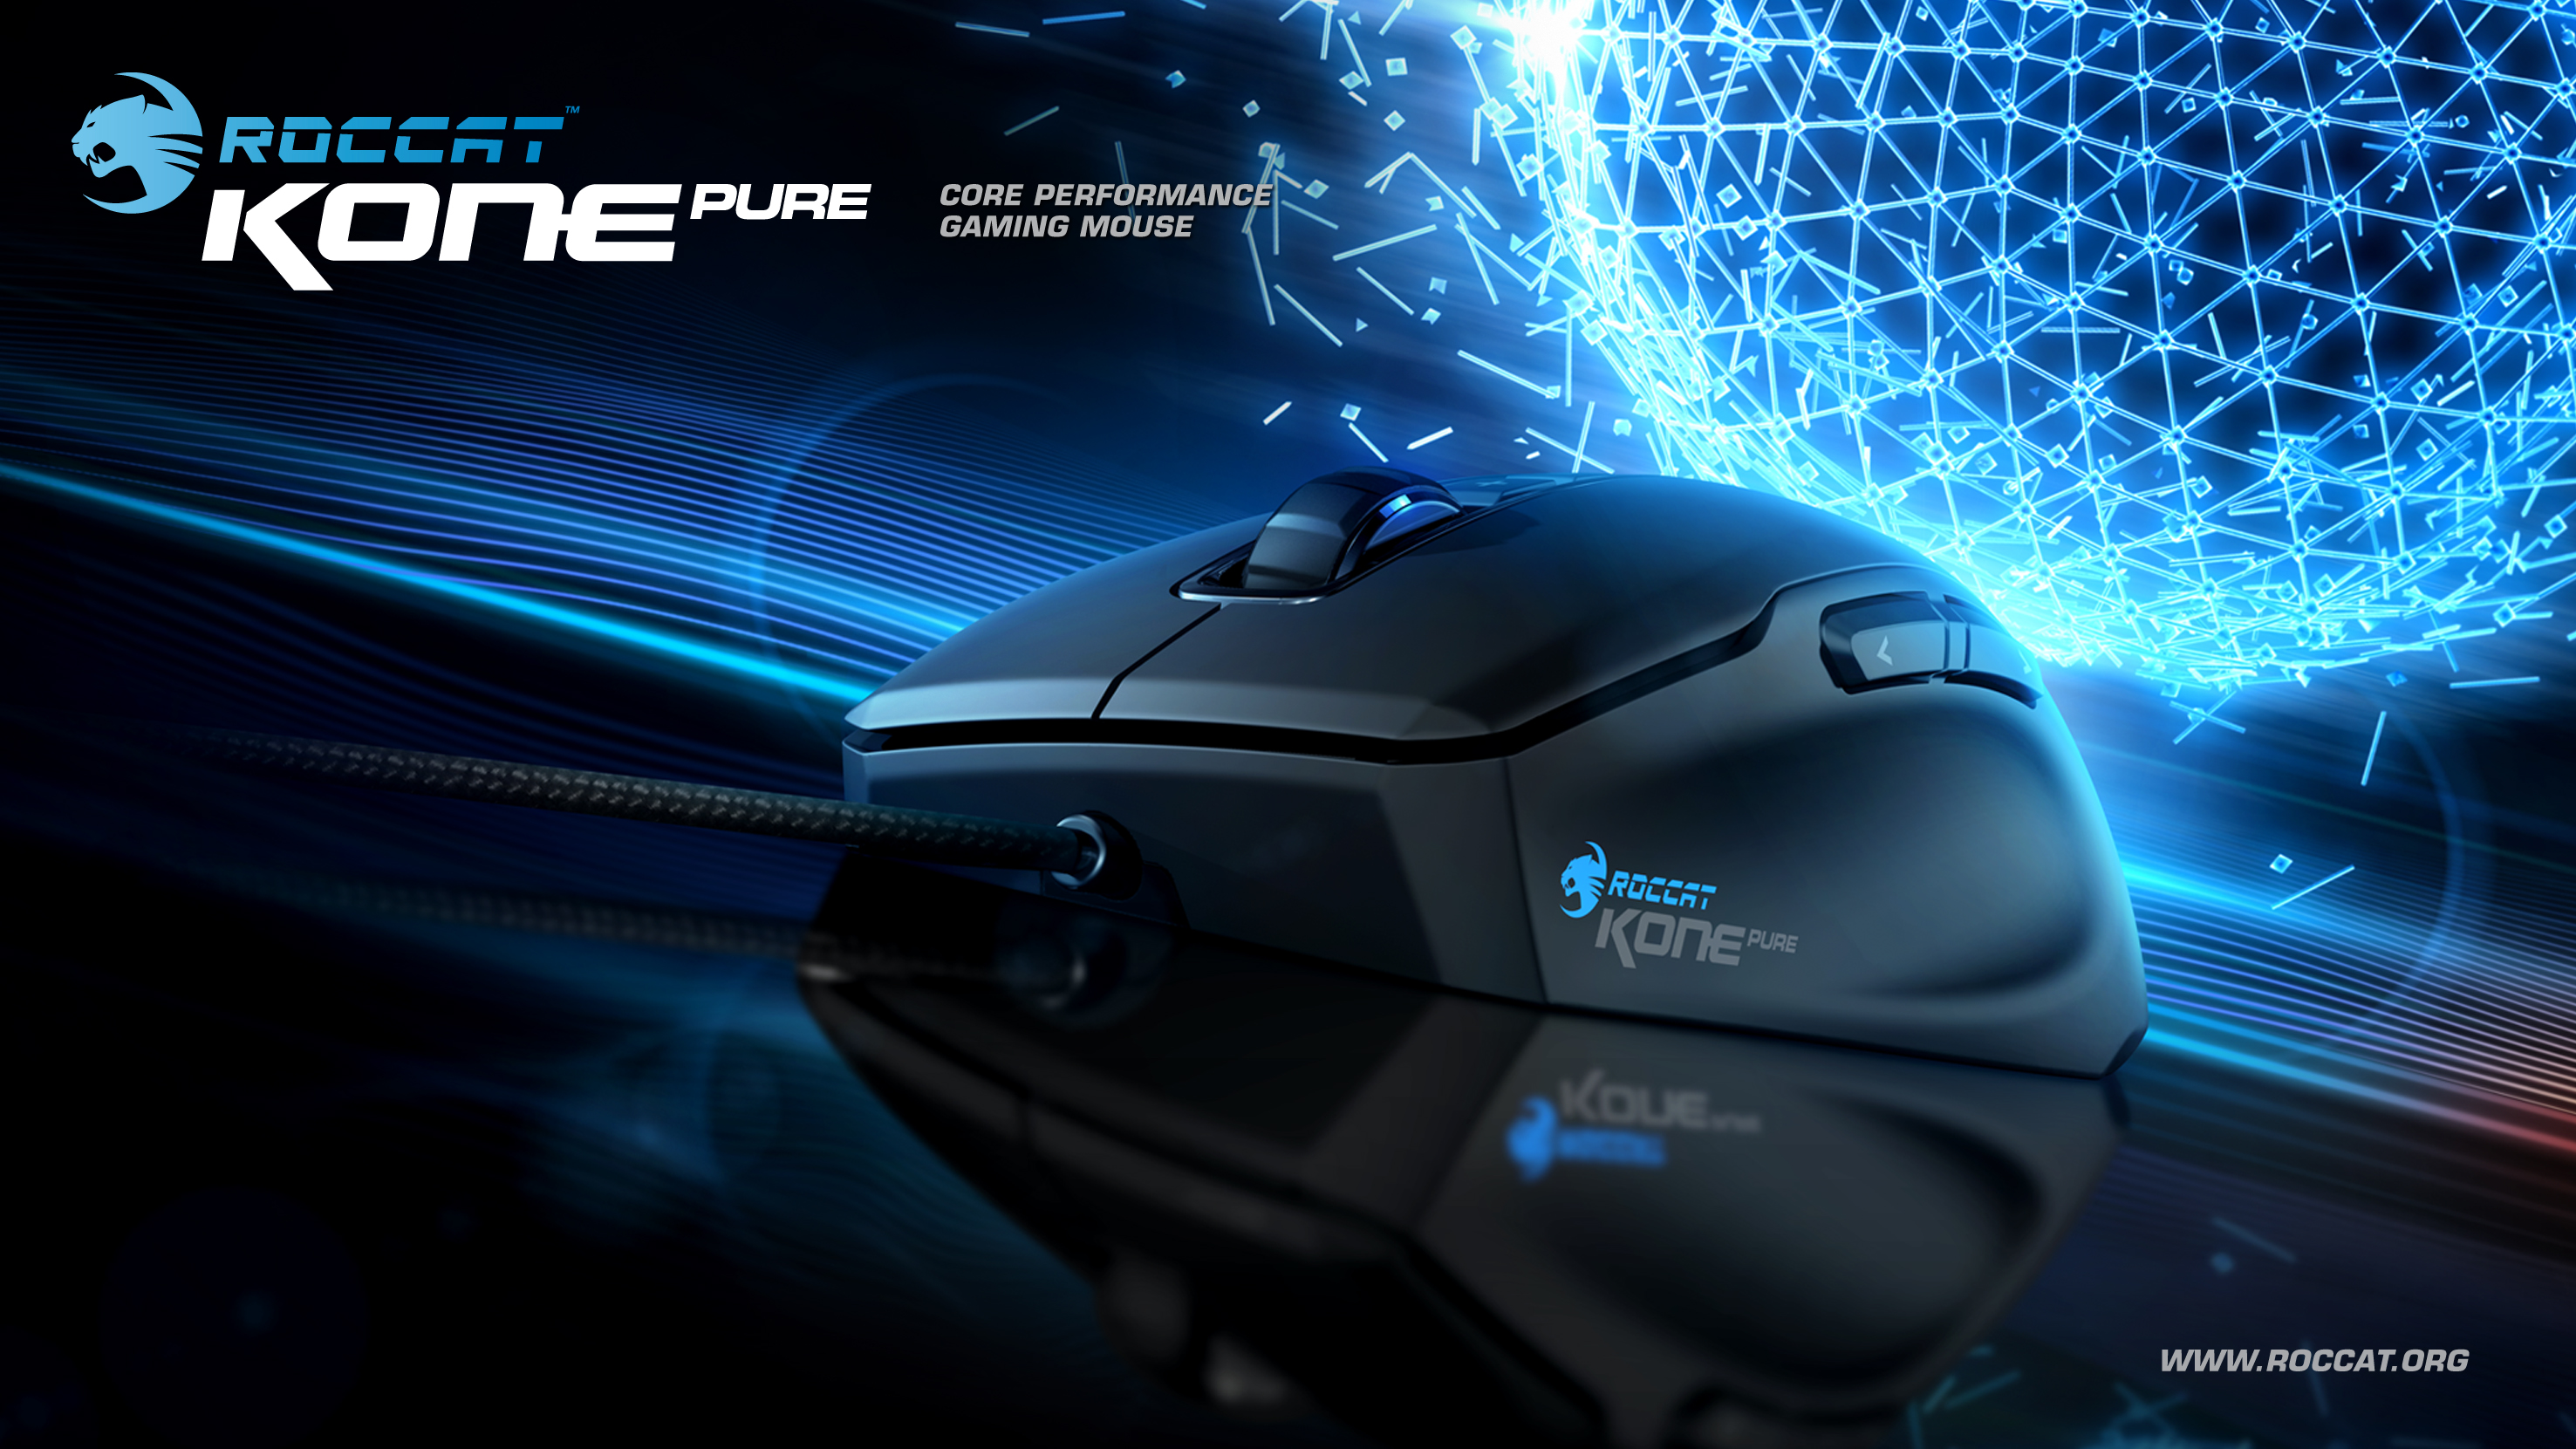 ROCCAT-Kone-Pure_PressPic_Artwork_02